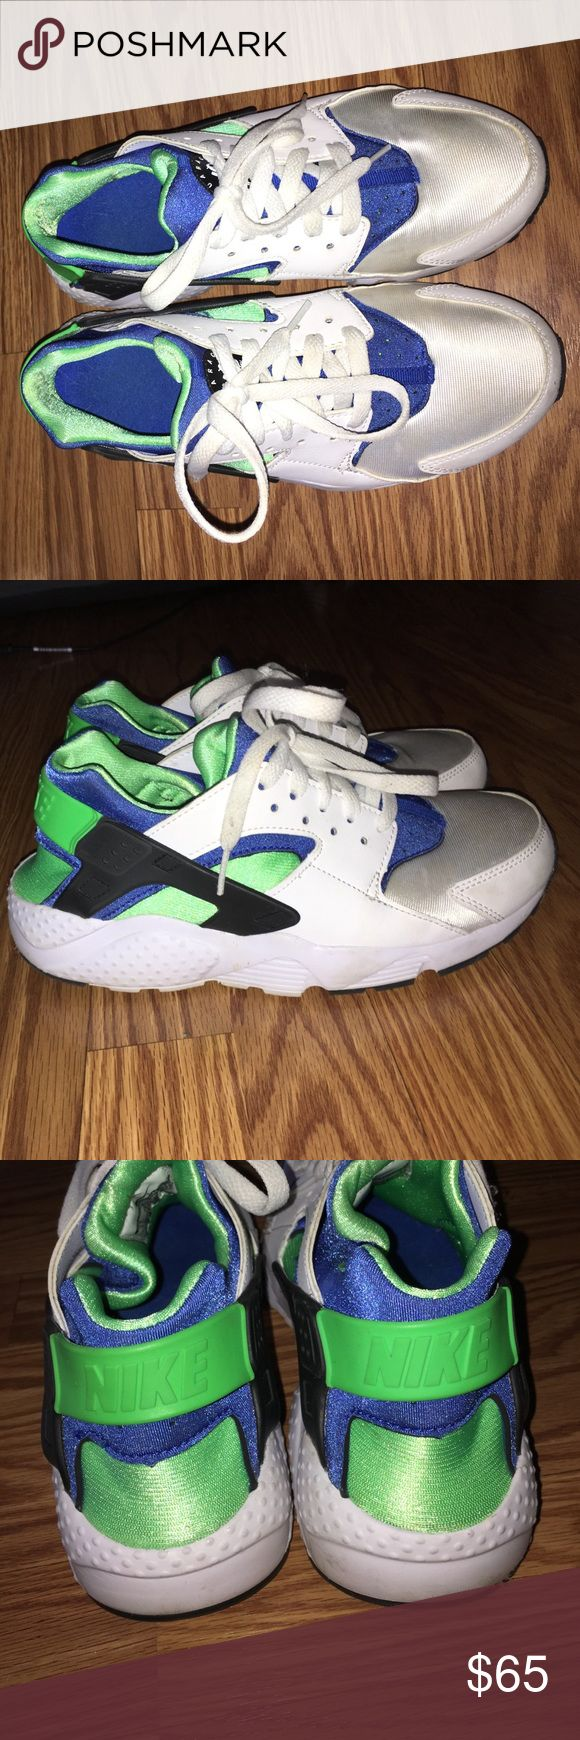 White green blue and black huaraches Really good condition about 8 1/2 out of 10 condition . Super comfy and stylish ! Willing to negotiate offers! Don't have the box for them anymore Nike Shoes Sneakers